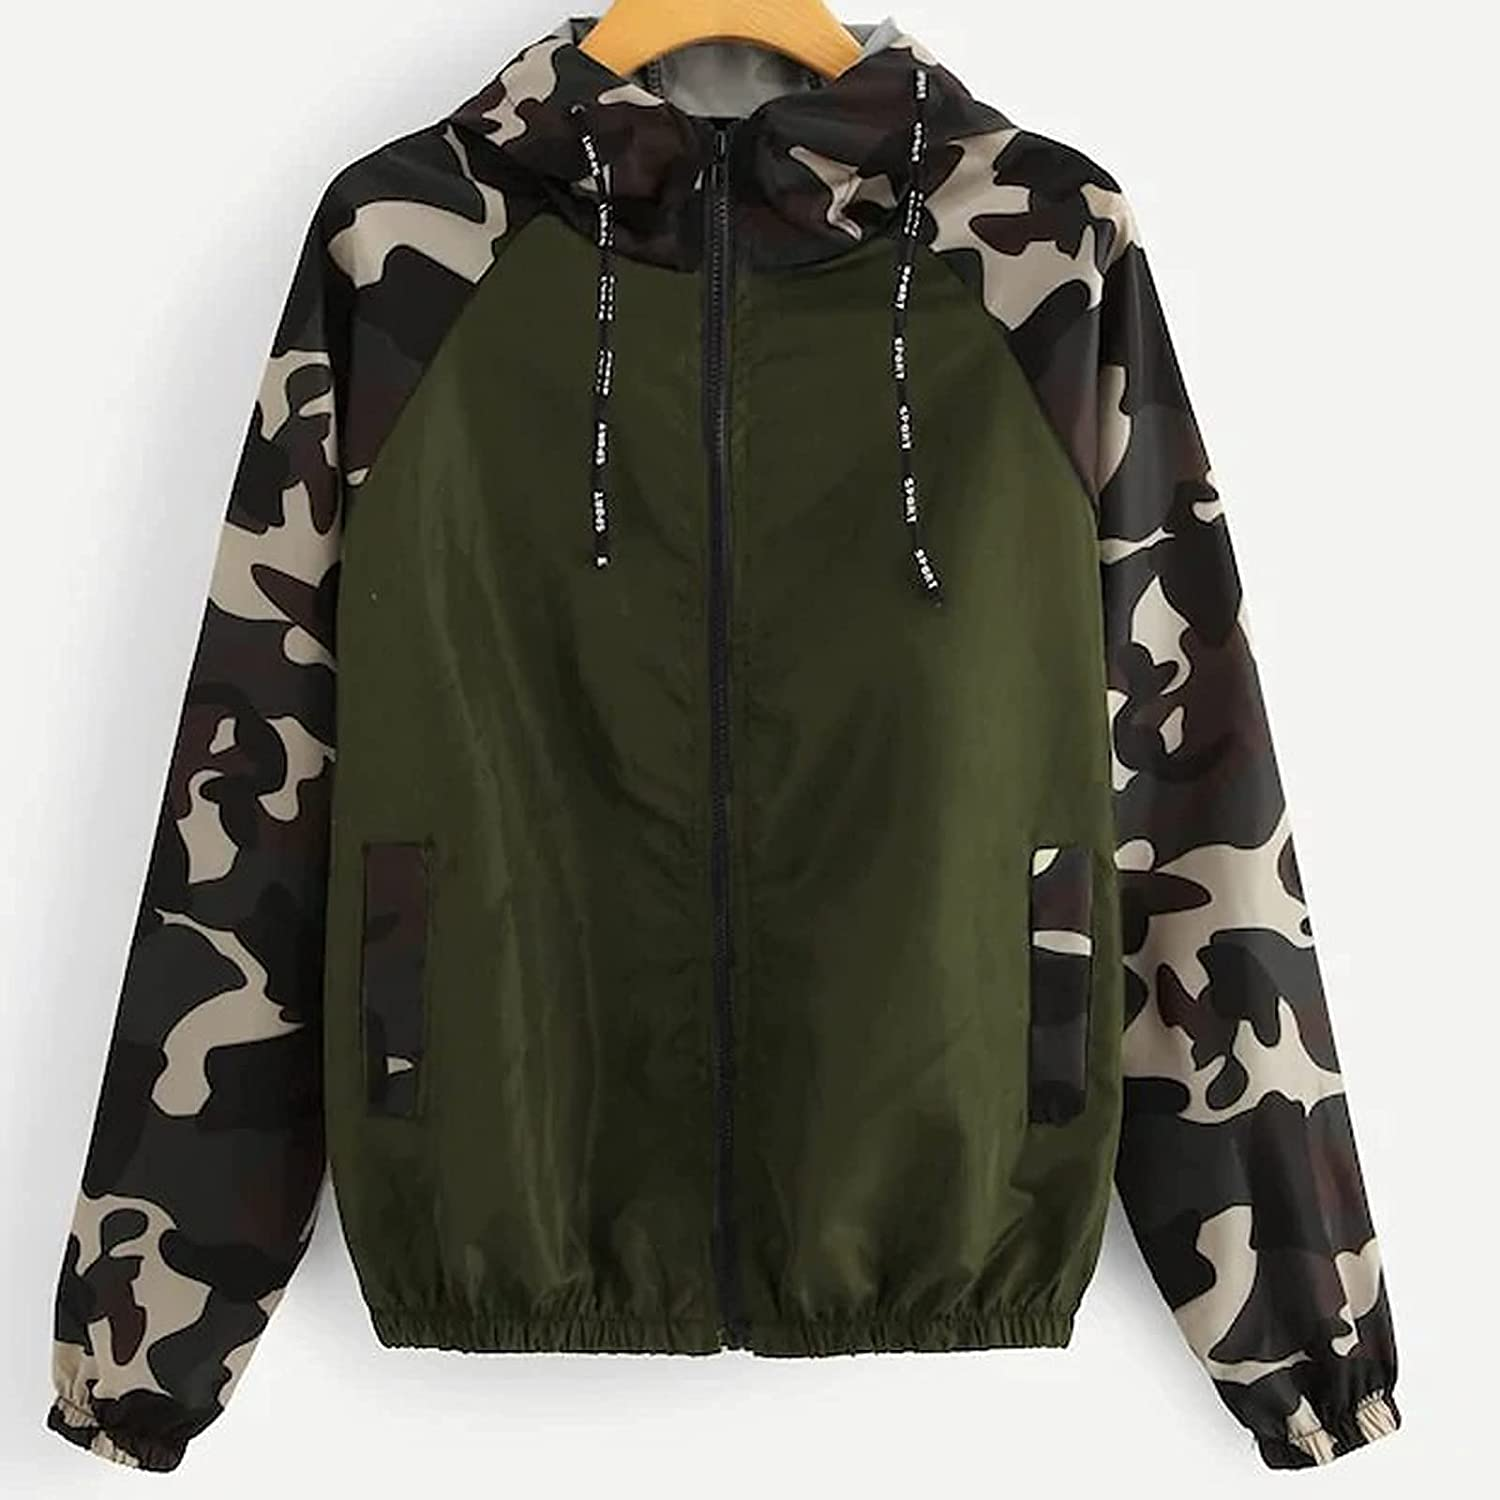 TLOOWY Women's Camo Zip up Hoodie Jacket Camouflage Long Sleeve Drawstring Hooded Pullover Sweatshirt with Pocket